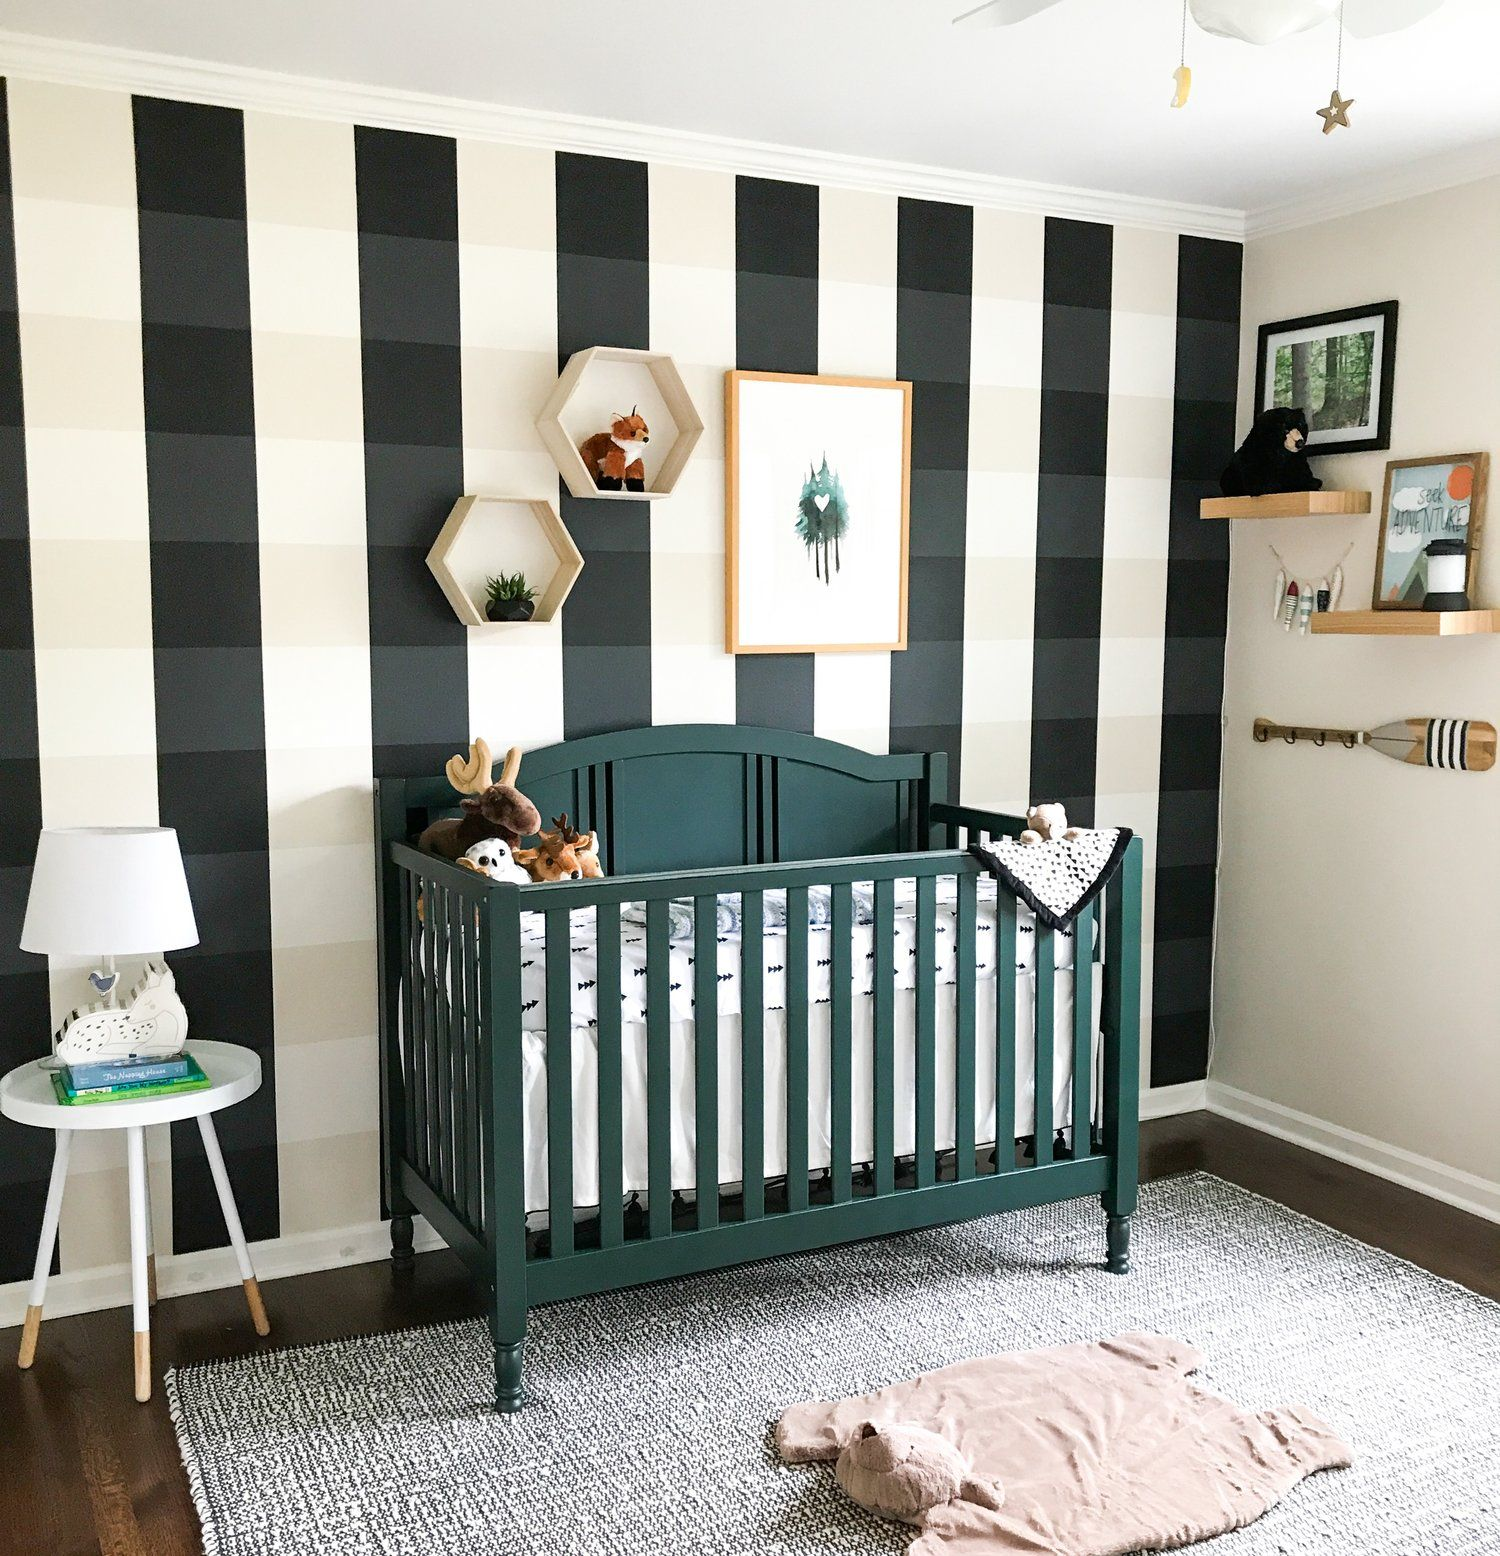 Woodland Creatures Nursery Decor For Baby Boy Or Girl Outdoor Gender Neutral Buffalo Plaid Painted Wall Simple